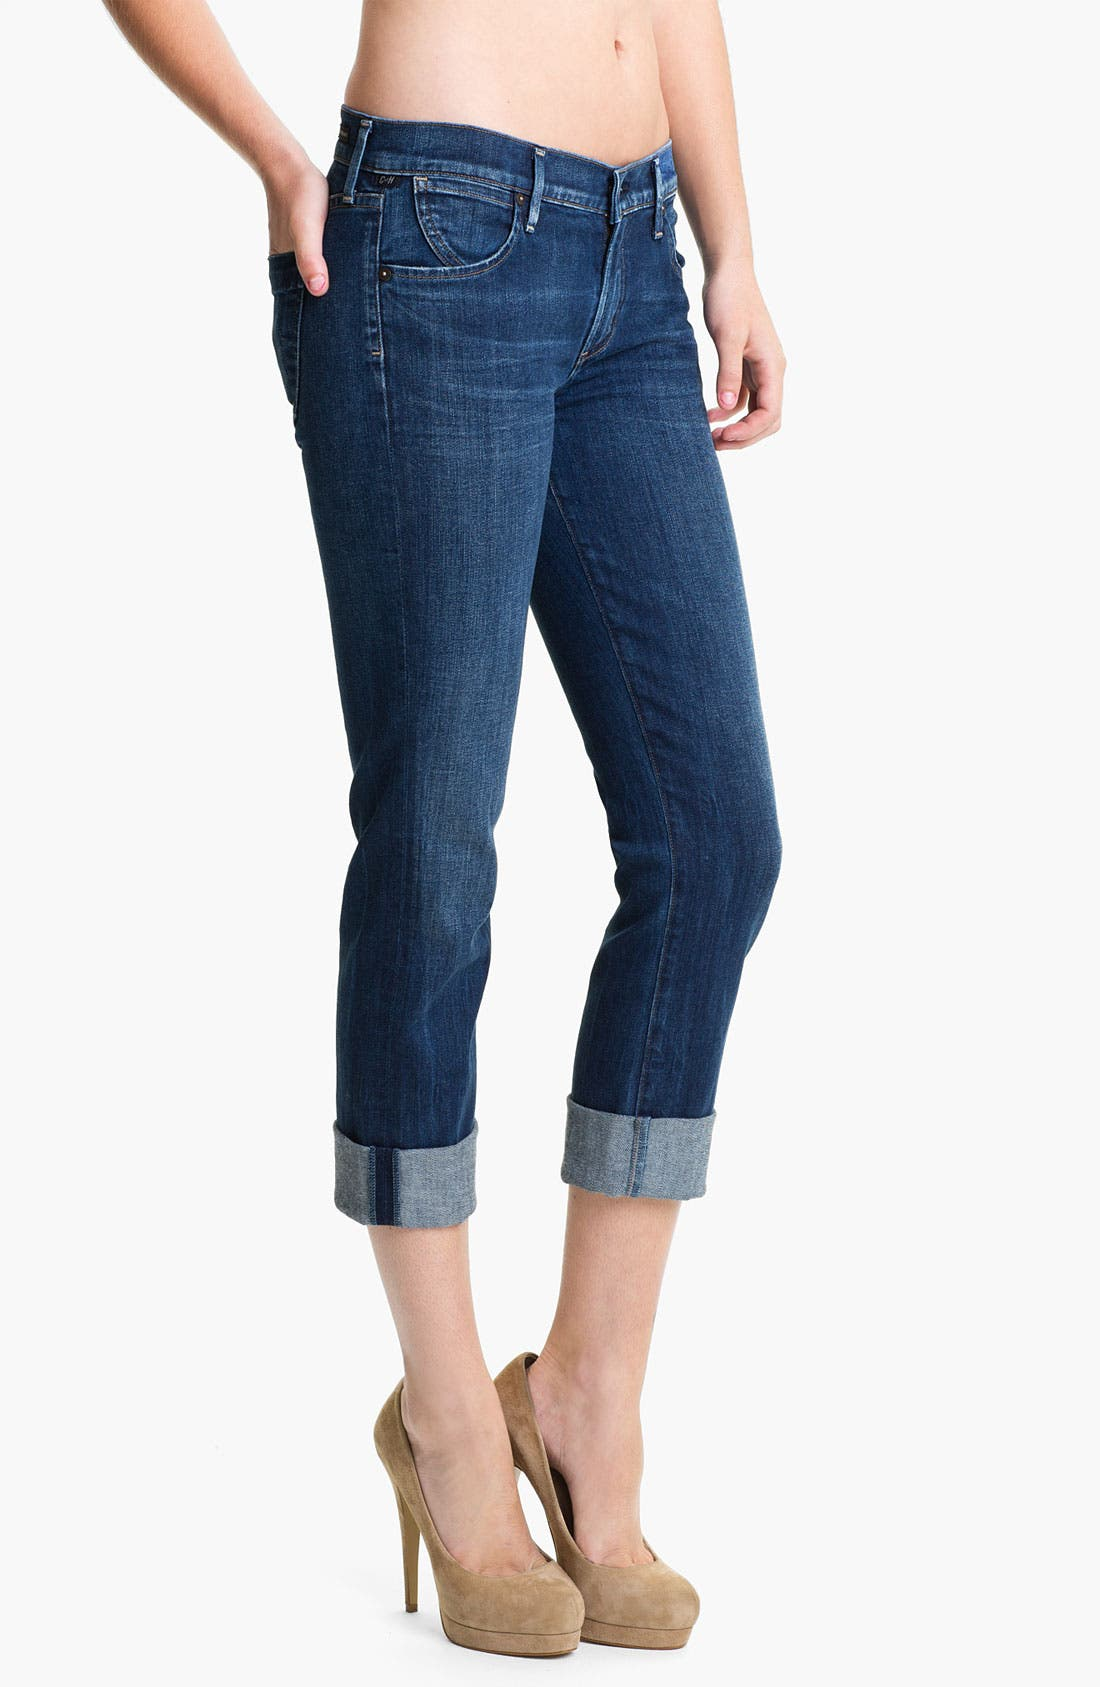 Main Image - Citizens of Humanity 'Dani' Skinny Crop Jeans (Envy Navy)